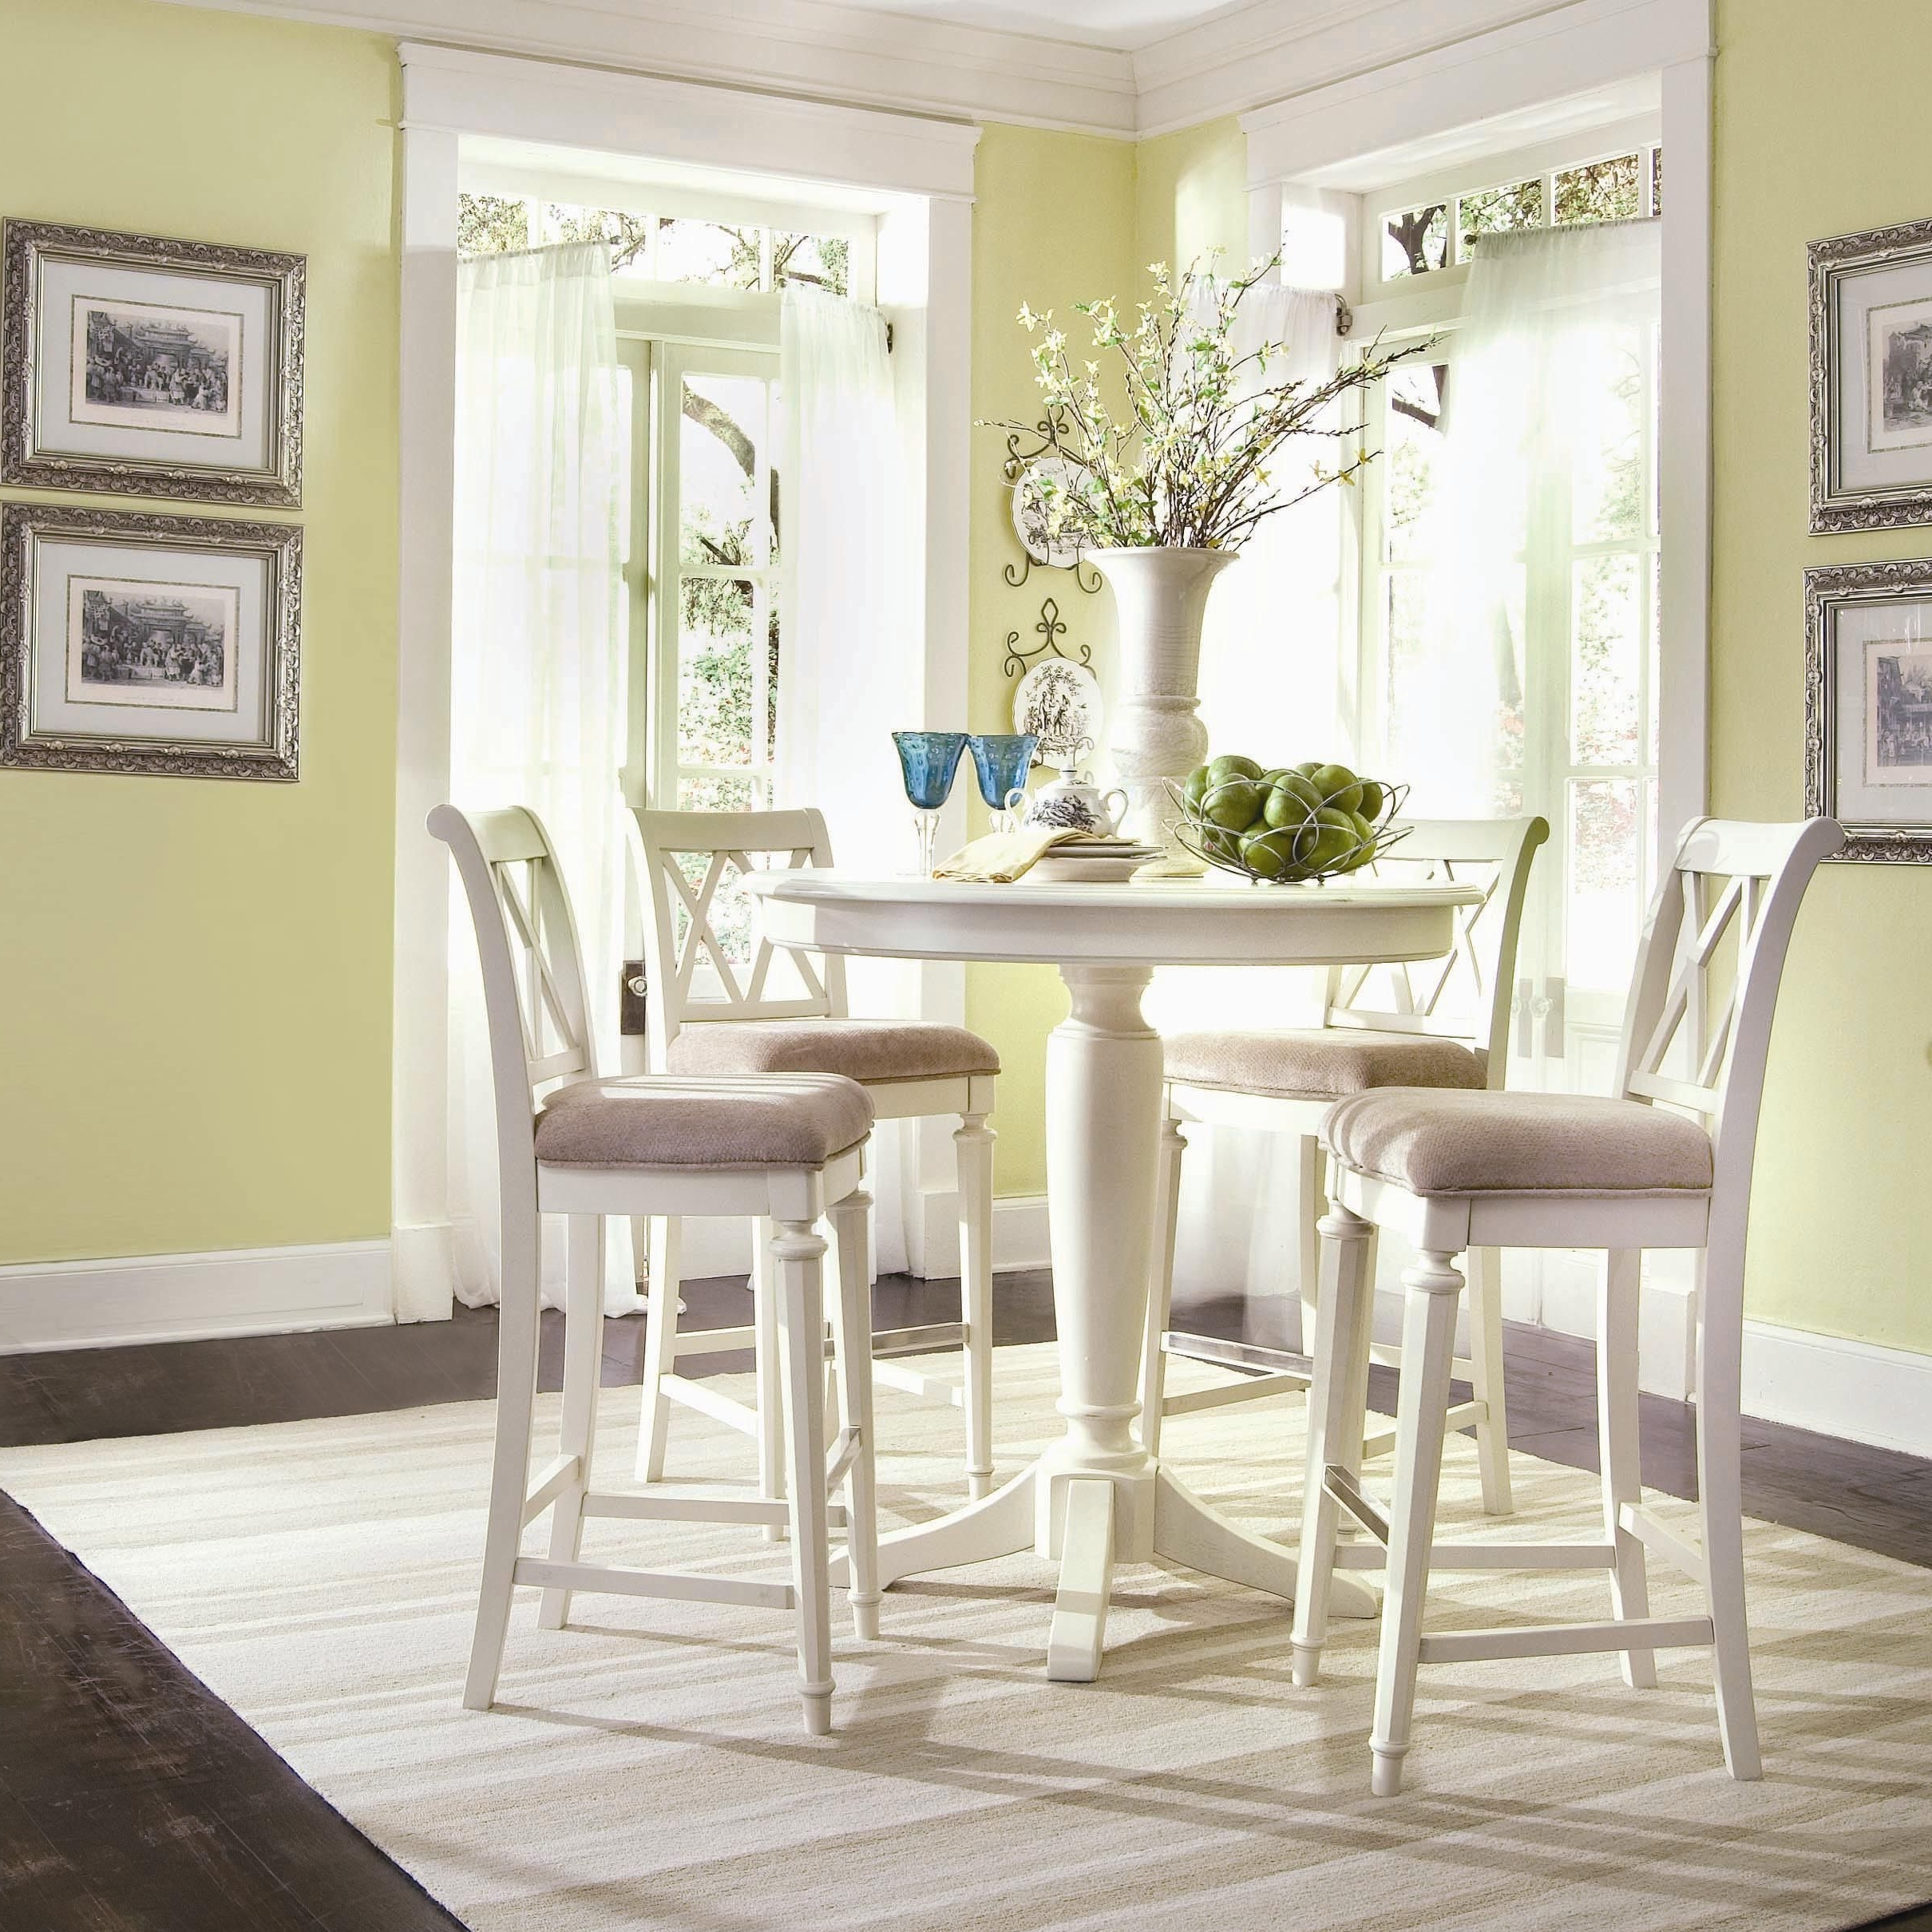 Create A Cottage Look With A Small Gathering Table! #cottage #life Regarding Most Current Palazzo 9 Piece Dining Sets With Pearson White Side Chairs (Gallery 10 of 25)